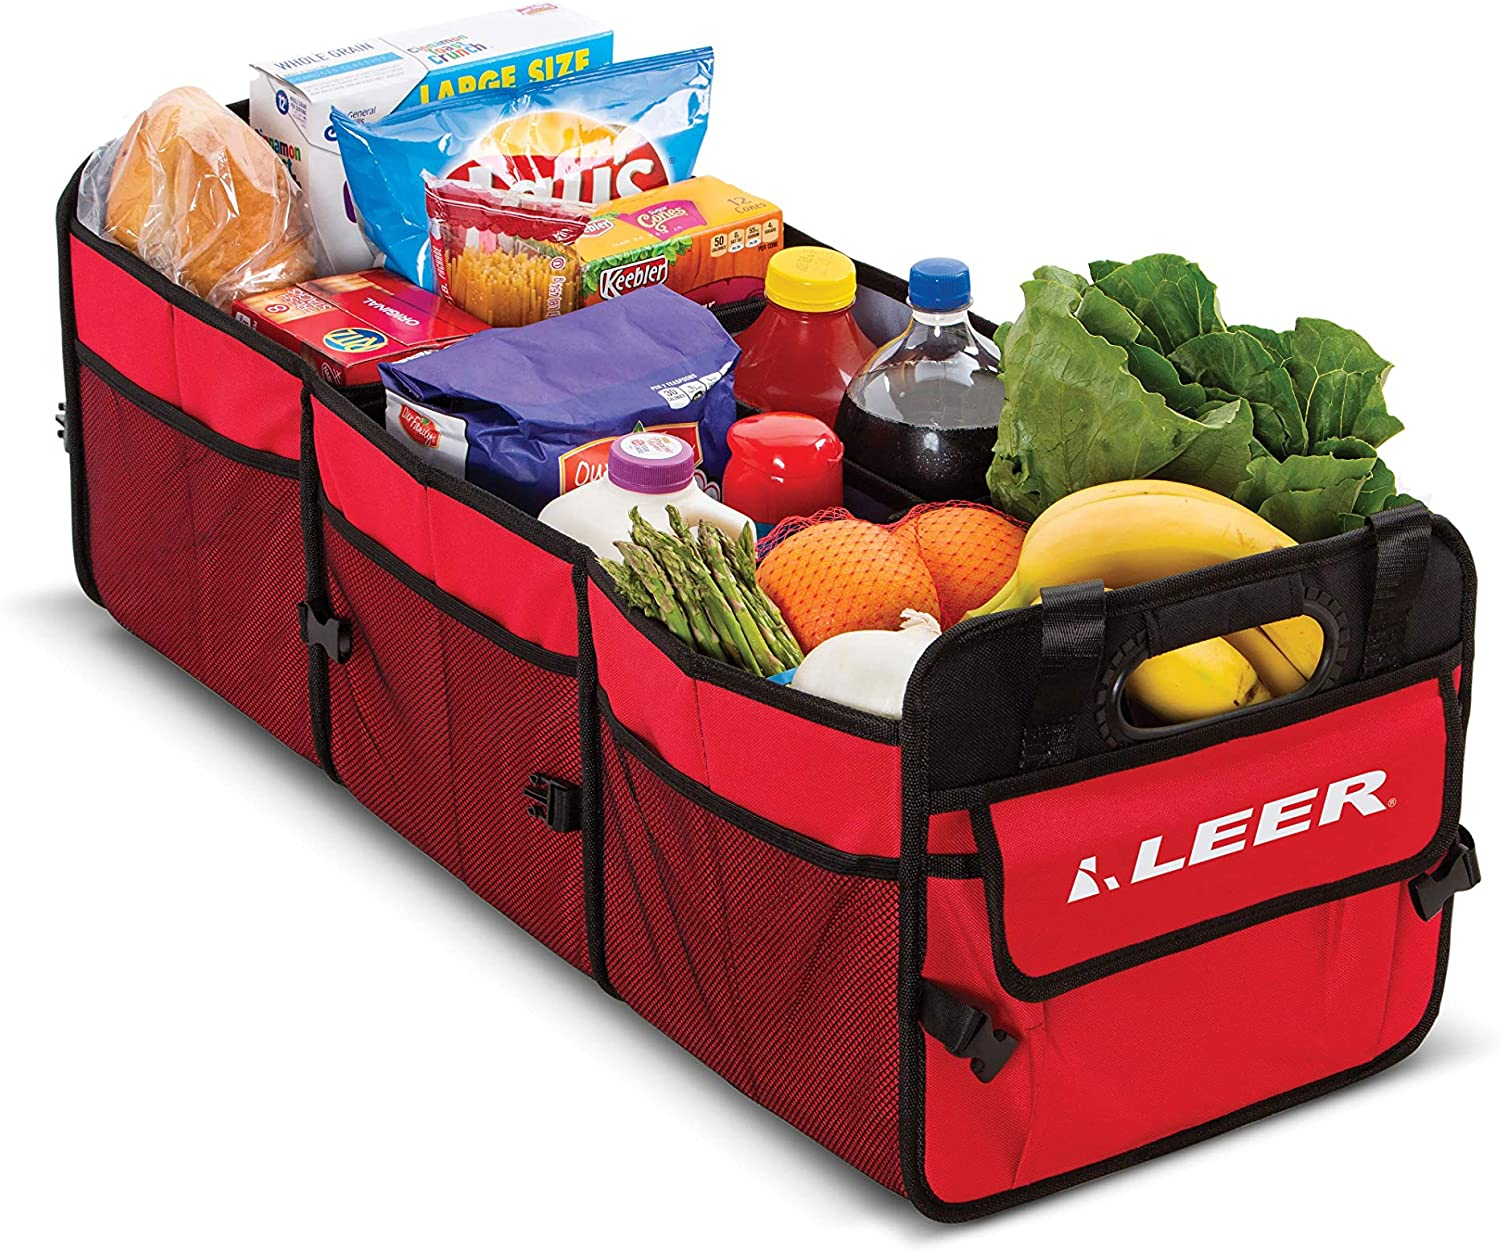 Collapsible 3 Compartment Cargo Caddy Use for Groceries Toys Convertible Cargo Caddy LEER Gear and Storage